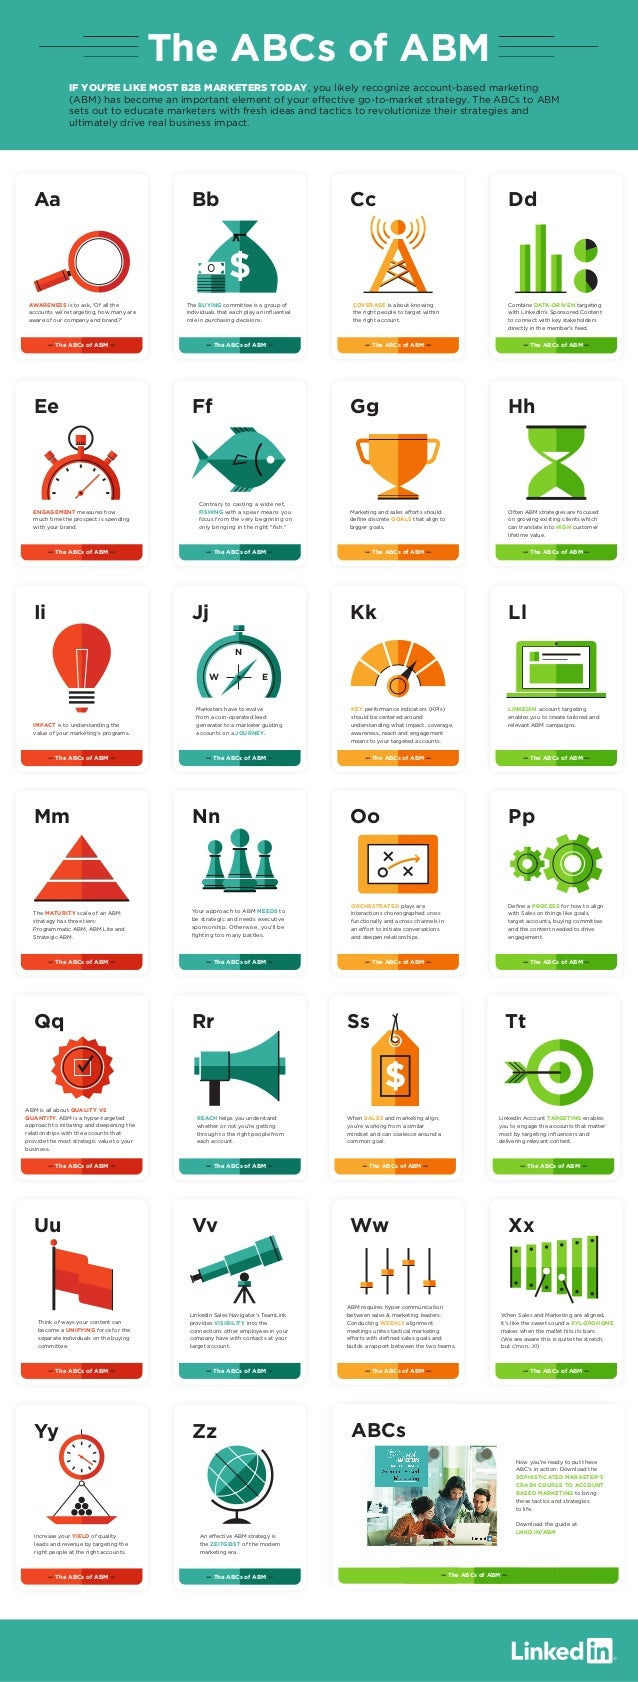 ABCs Now you're ready to put these ABC's in action. Download the SOPHISTICATED MARKETER'S CRASH COURSE TO ACCOUNT BASED MA...